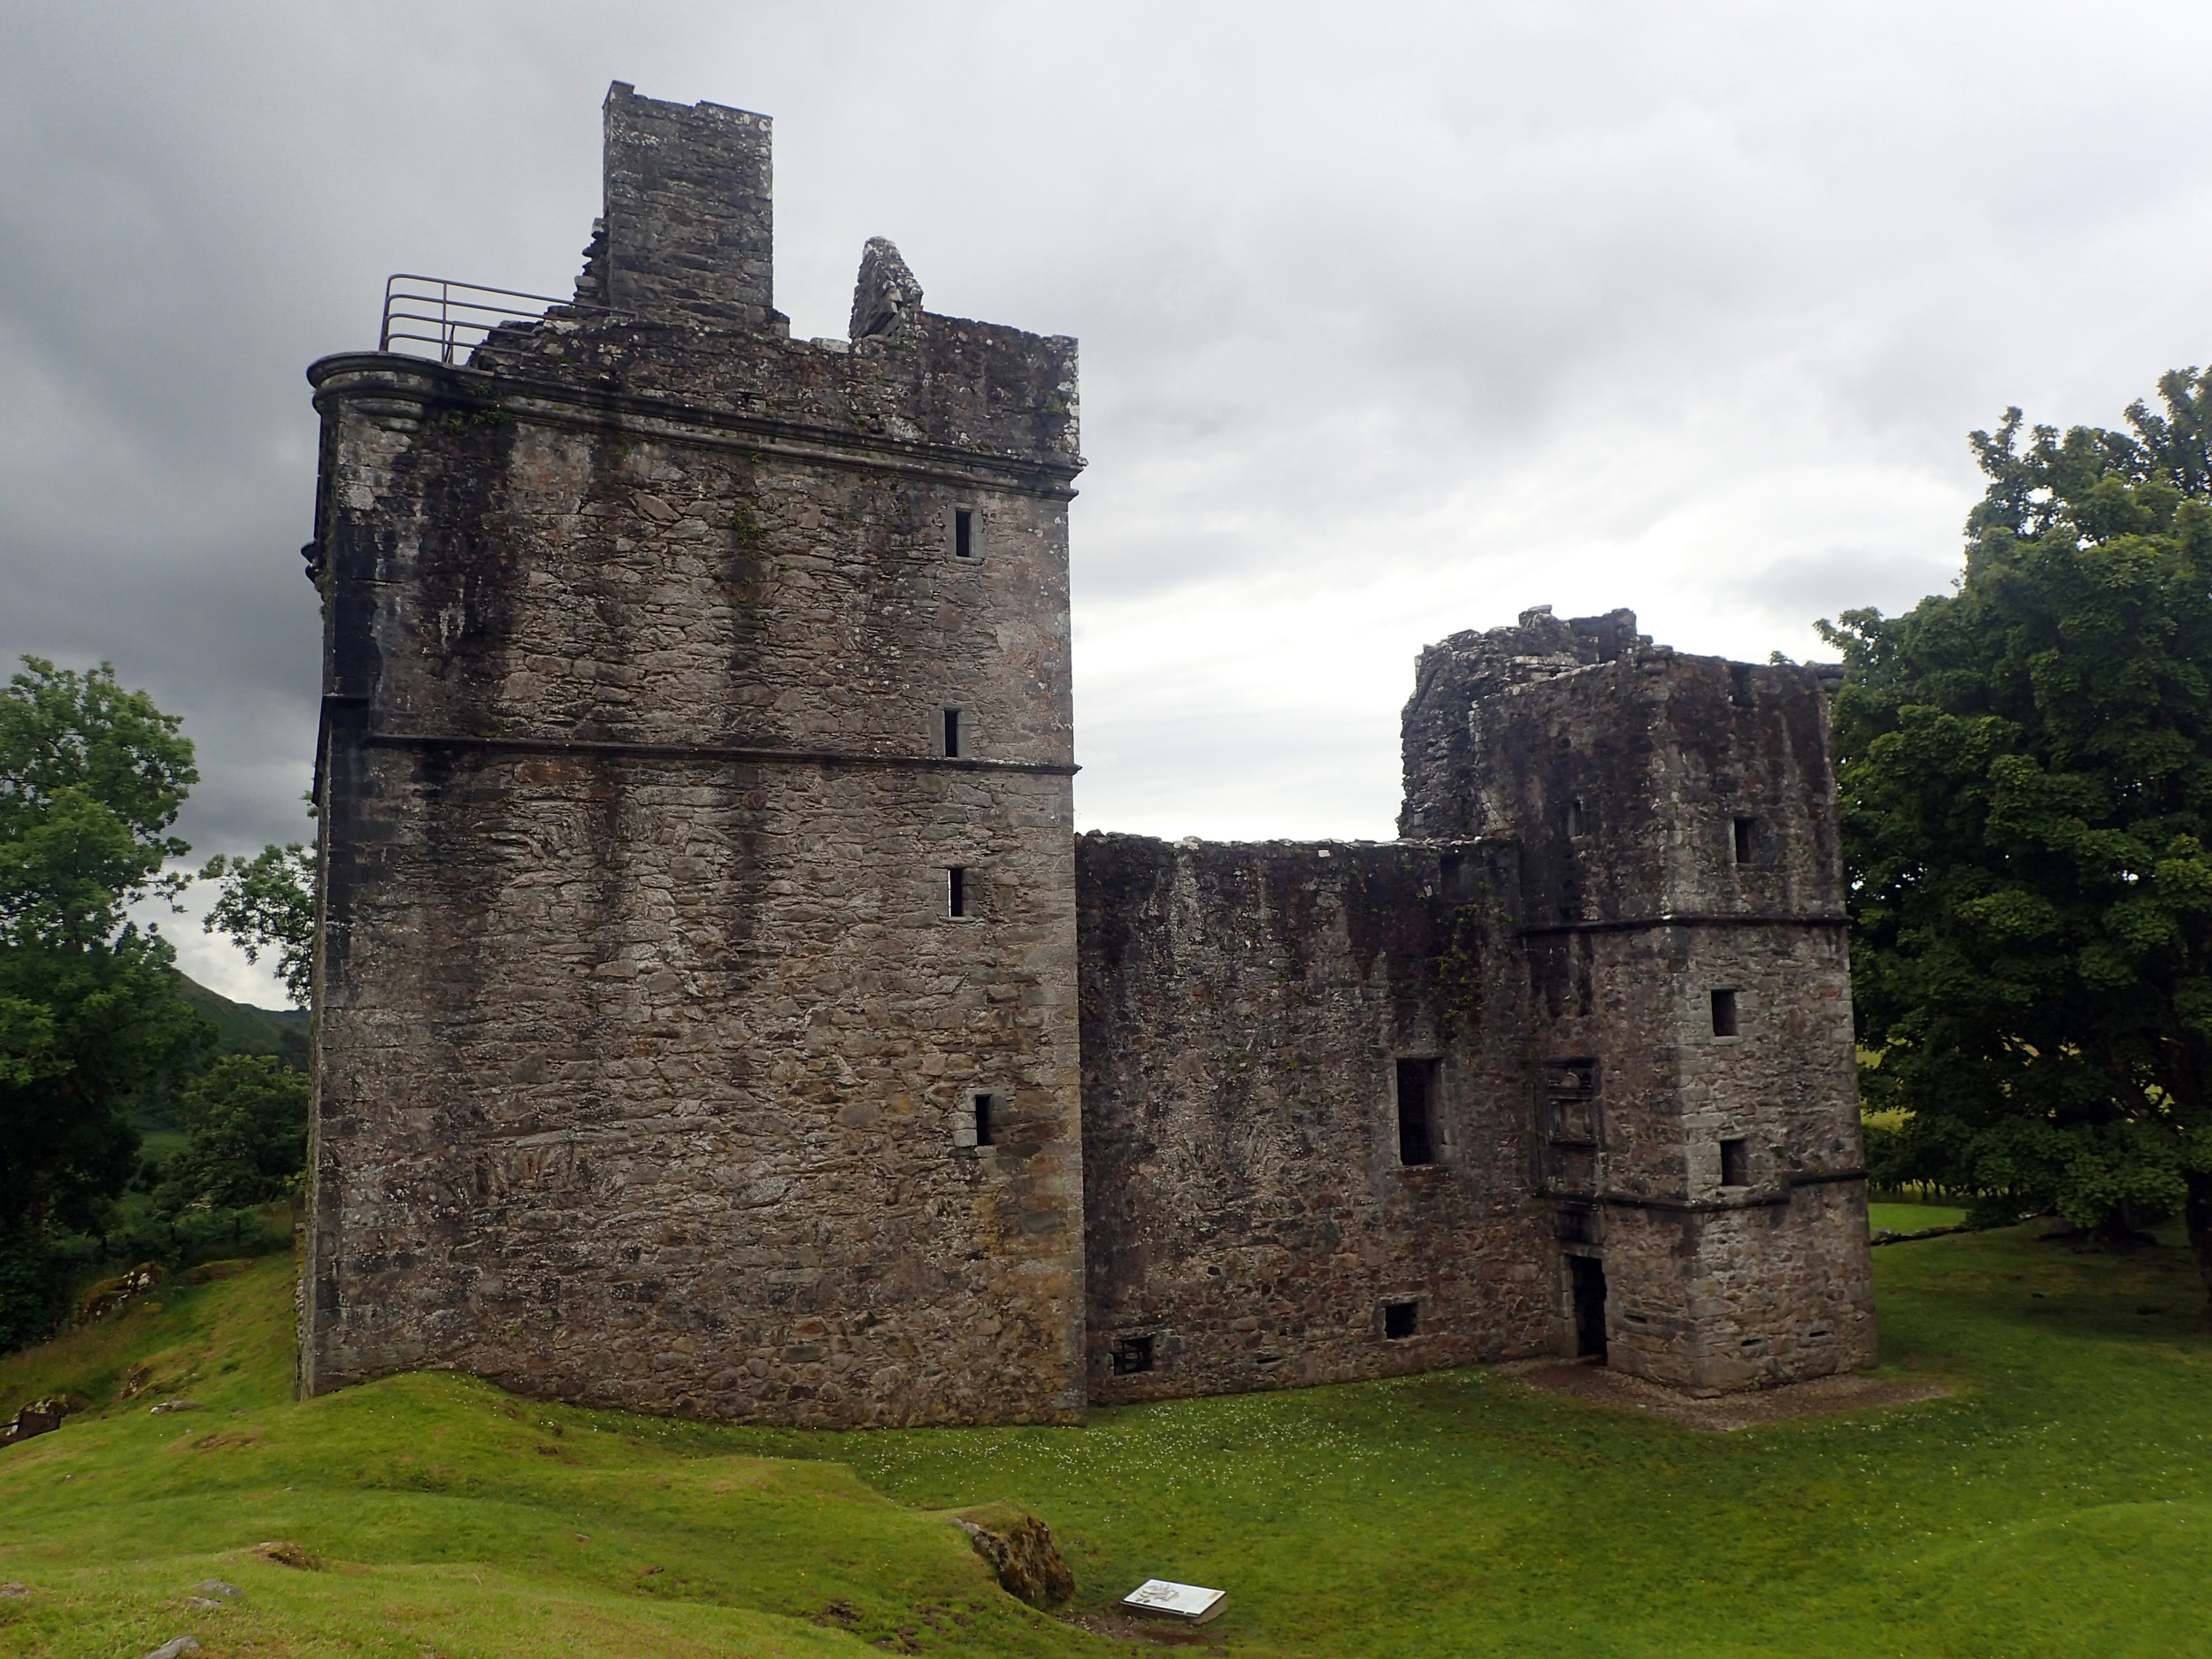 20150803 Castle at Kilmartin.jpg